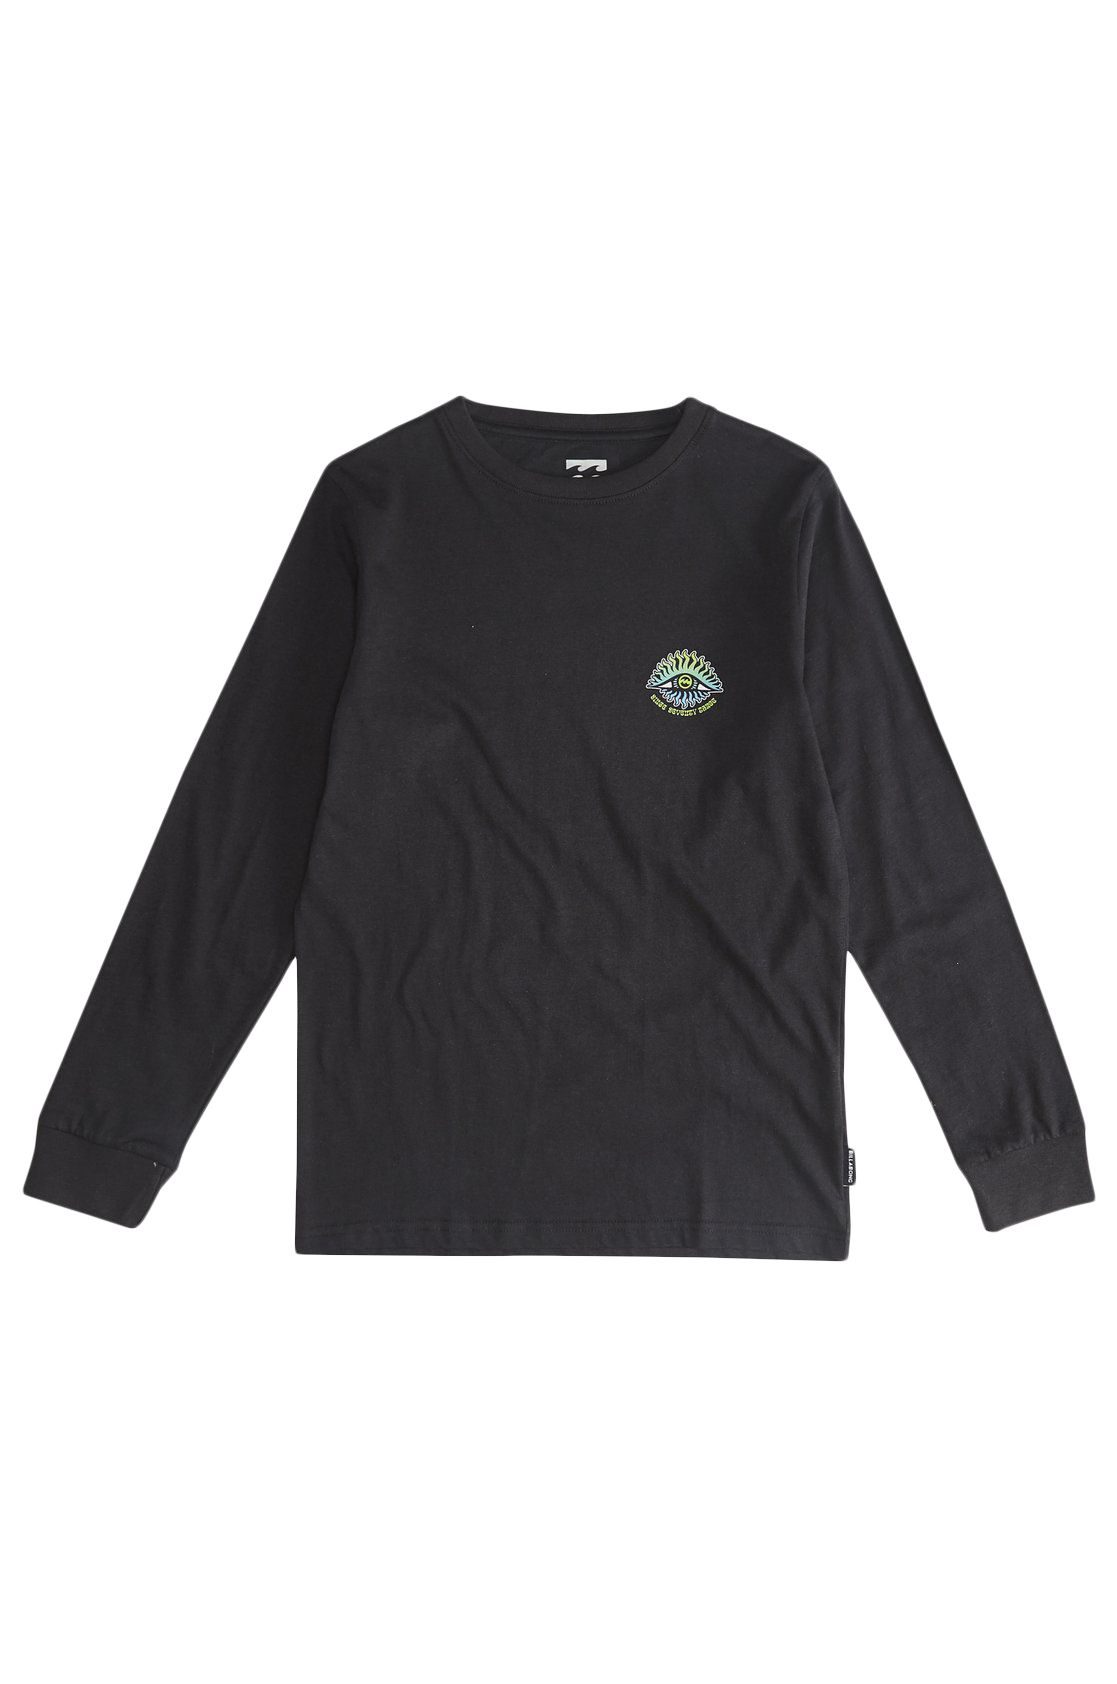 L-Sleeve Billabong ICONIC Black